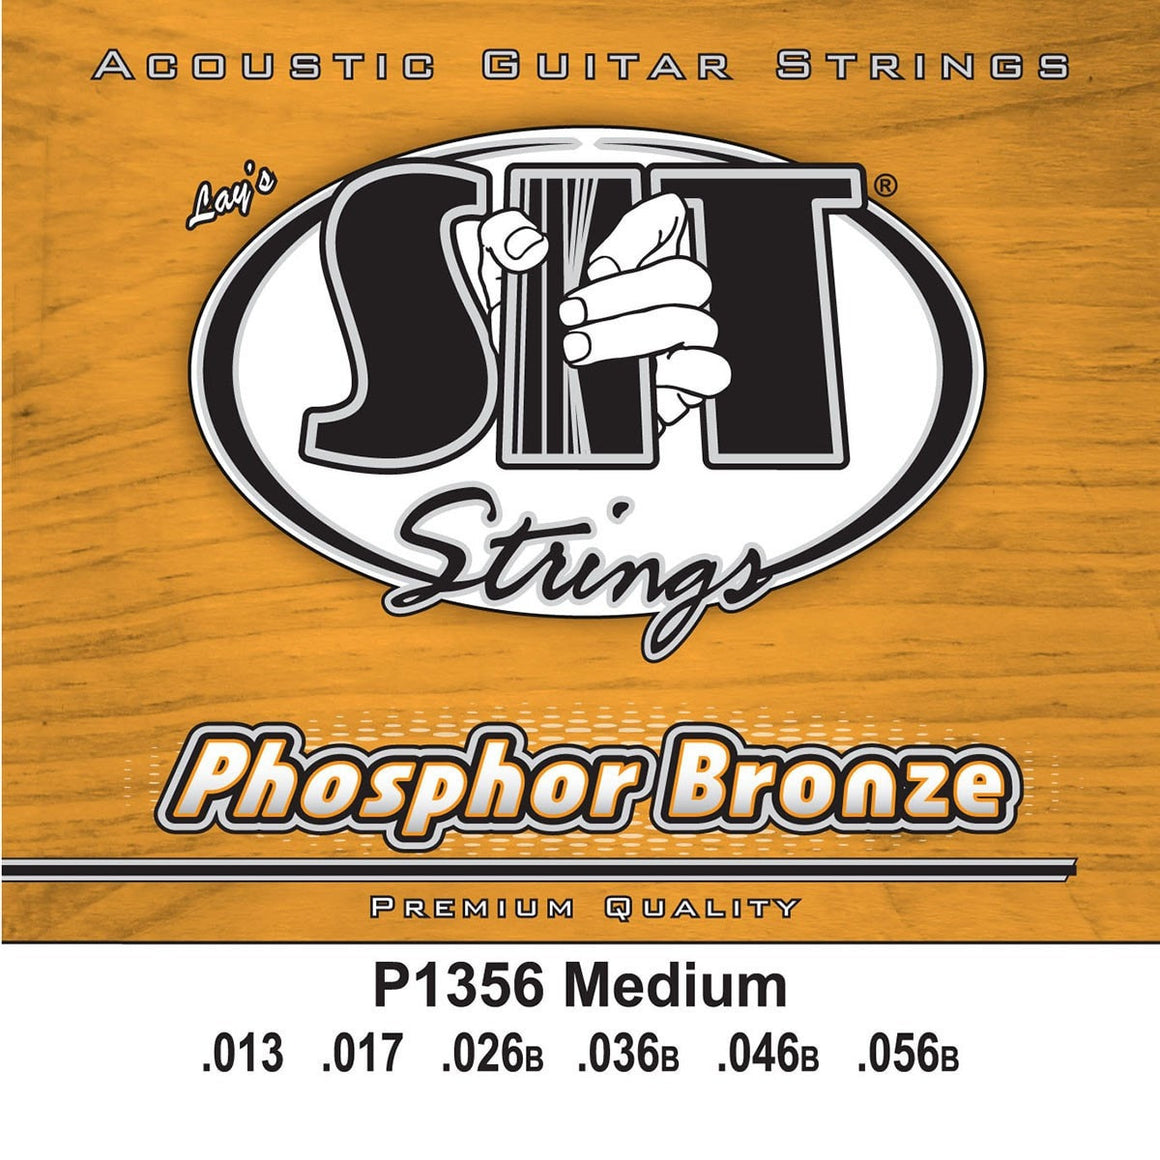 SIT Strings Acoustic Guitar Strings SIT Phosphor Bronze Medium P1356 Acoustic Guitar Strings